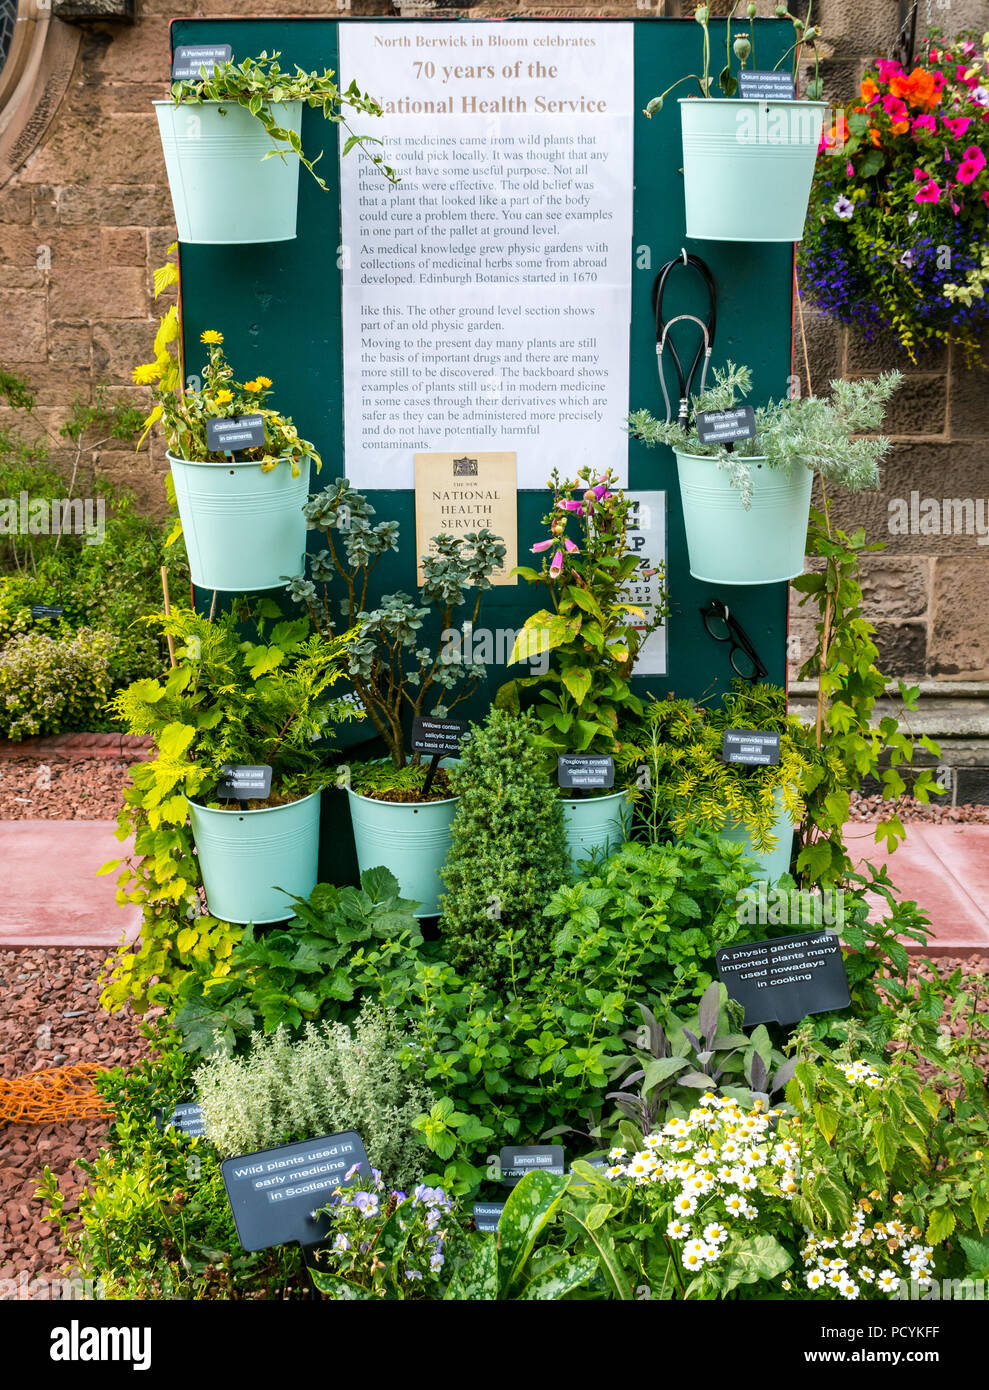 Floral display medicinal plants celebrating 70 years of the National Health Service, Abbey Church, North Berwick in Bloom, East Lothian, Scotland, UK - Stock Image